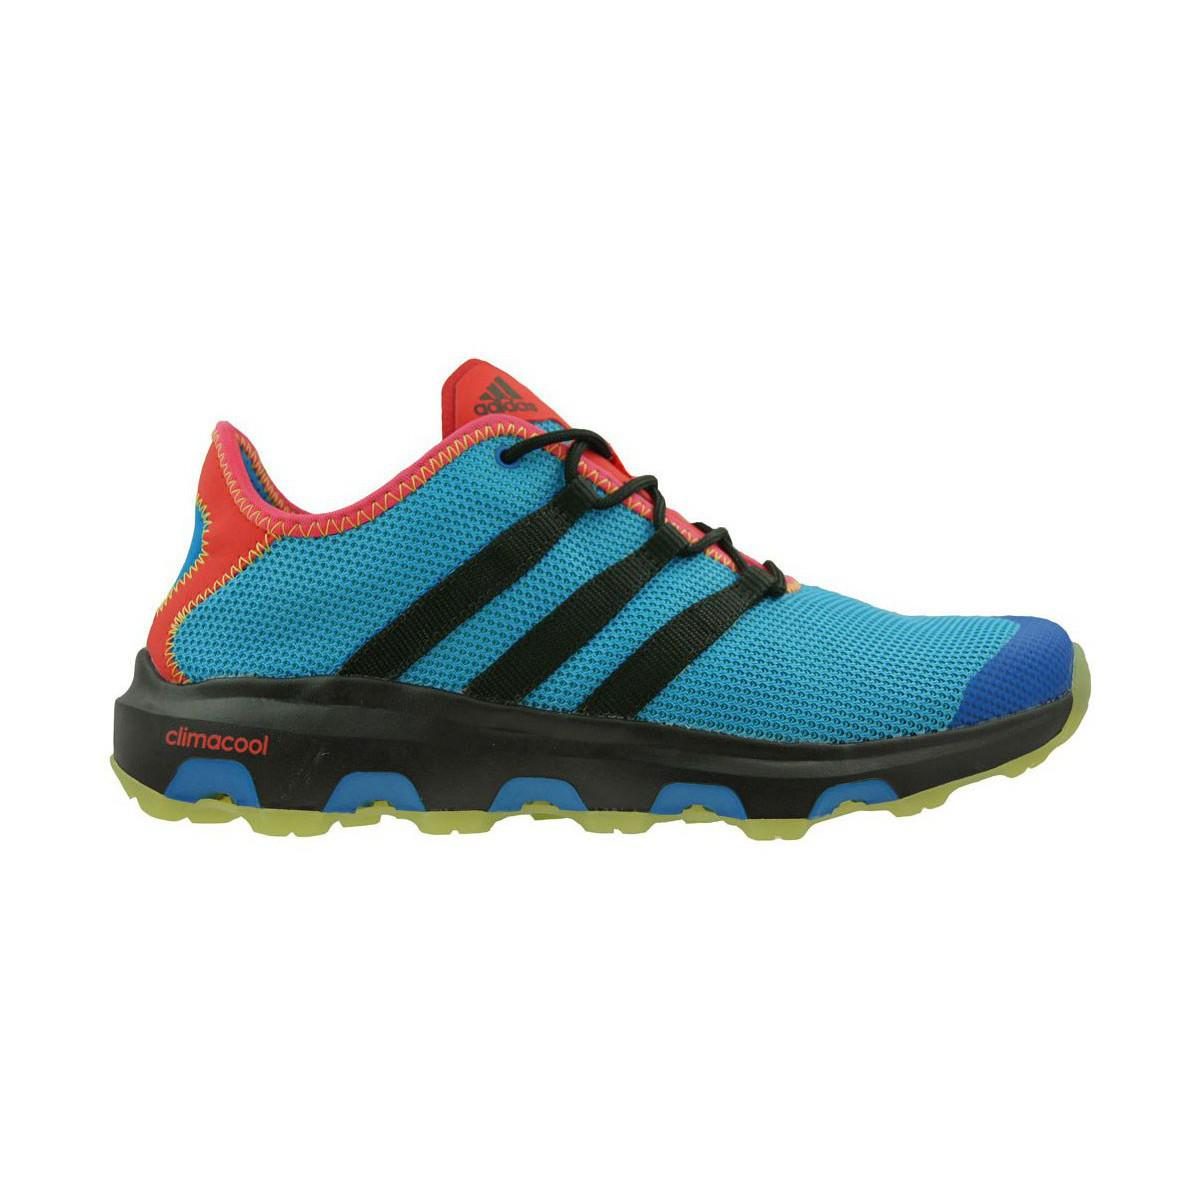 Adidas Climacool Voyager In Uomini Corrono I Formatori In Voyager Rosso A Rosso 741cc3